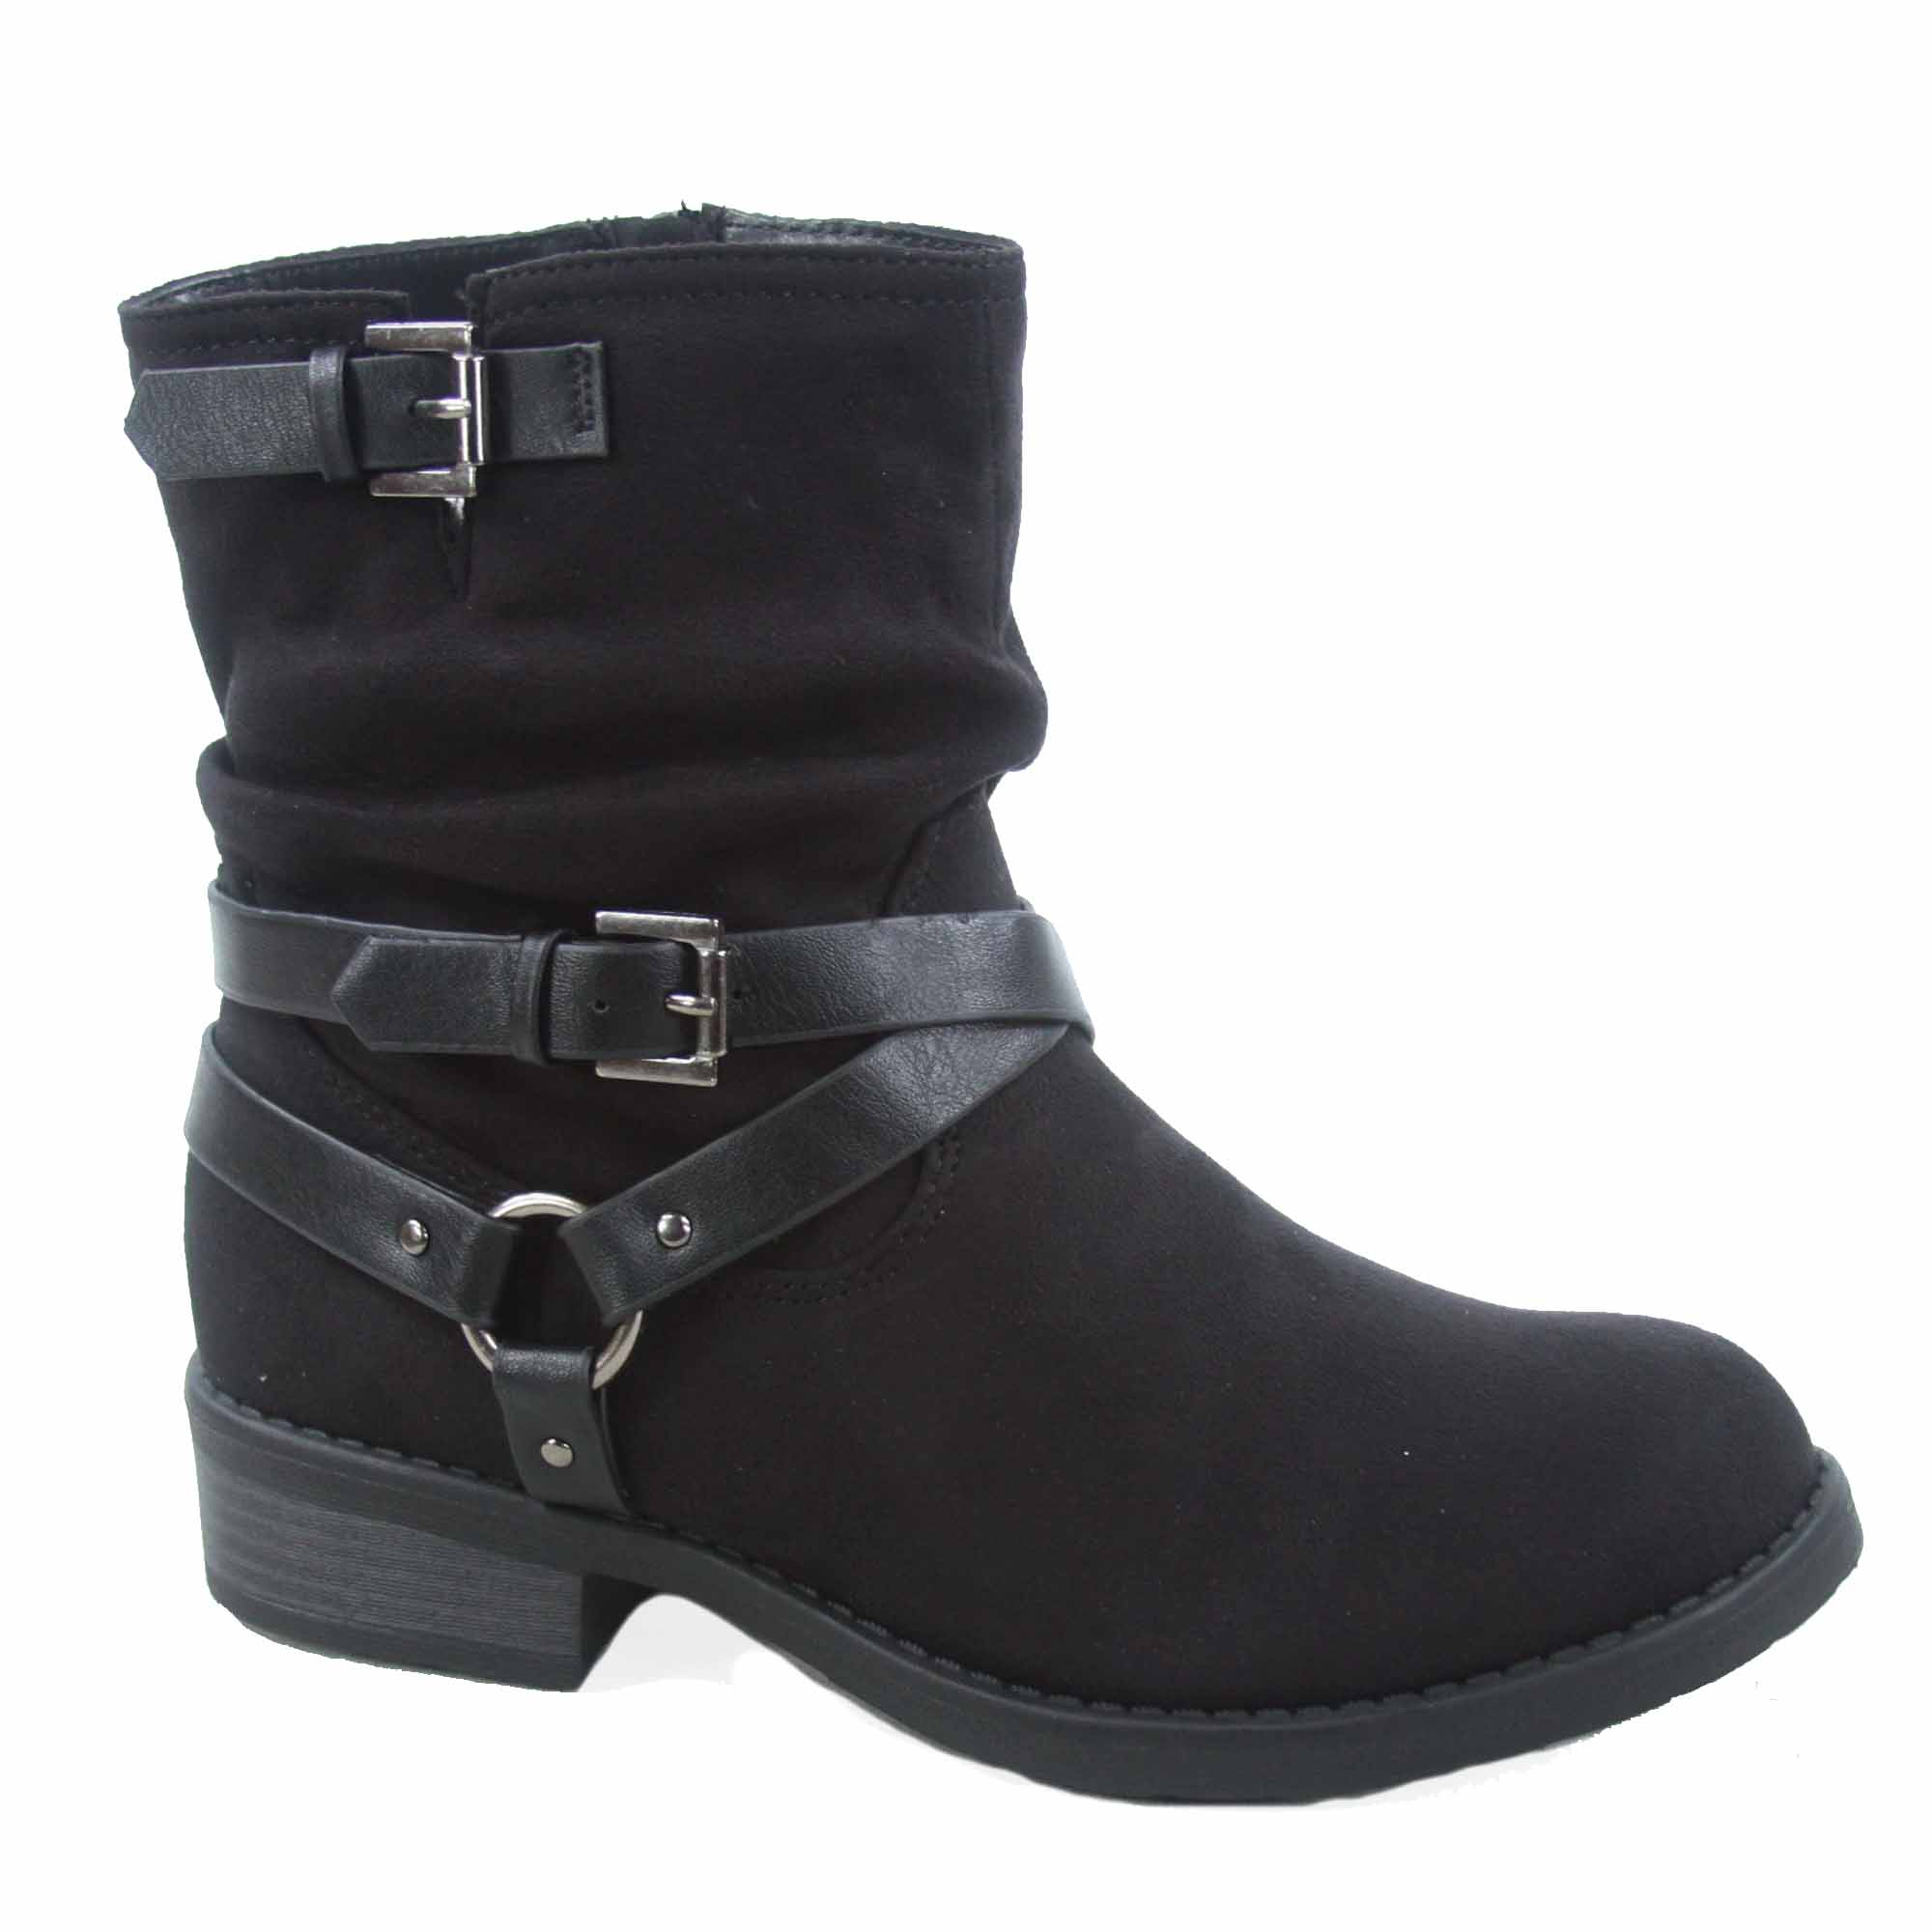 Ladies Womens Boots Faux Fur Collar Twin Buckle Inside Zip Mid Calf Shoes Size